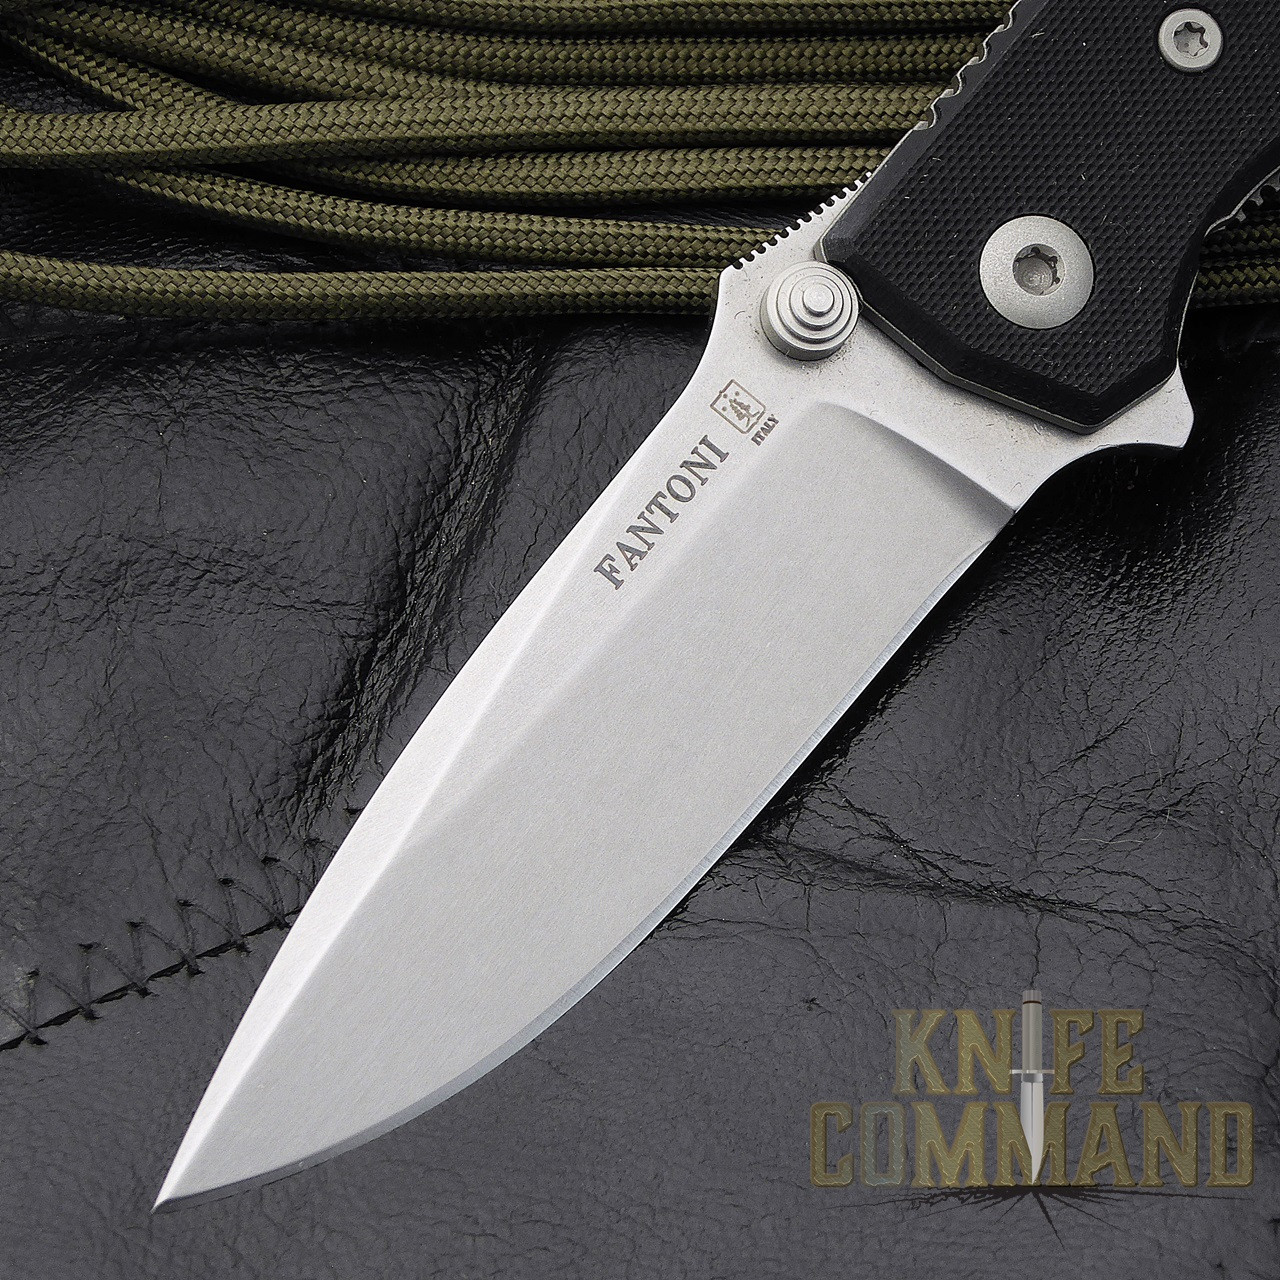 Fantoni HB 02 Black William Harsey Combat Folder Tactical Knife.  Flipper and thumbstuds.